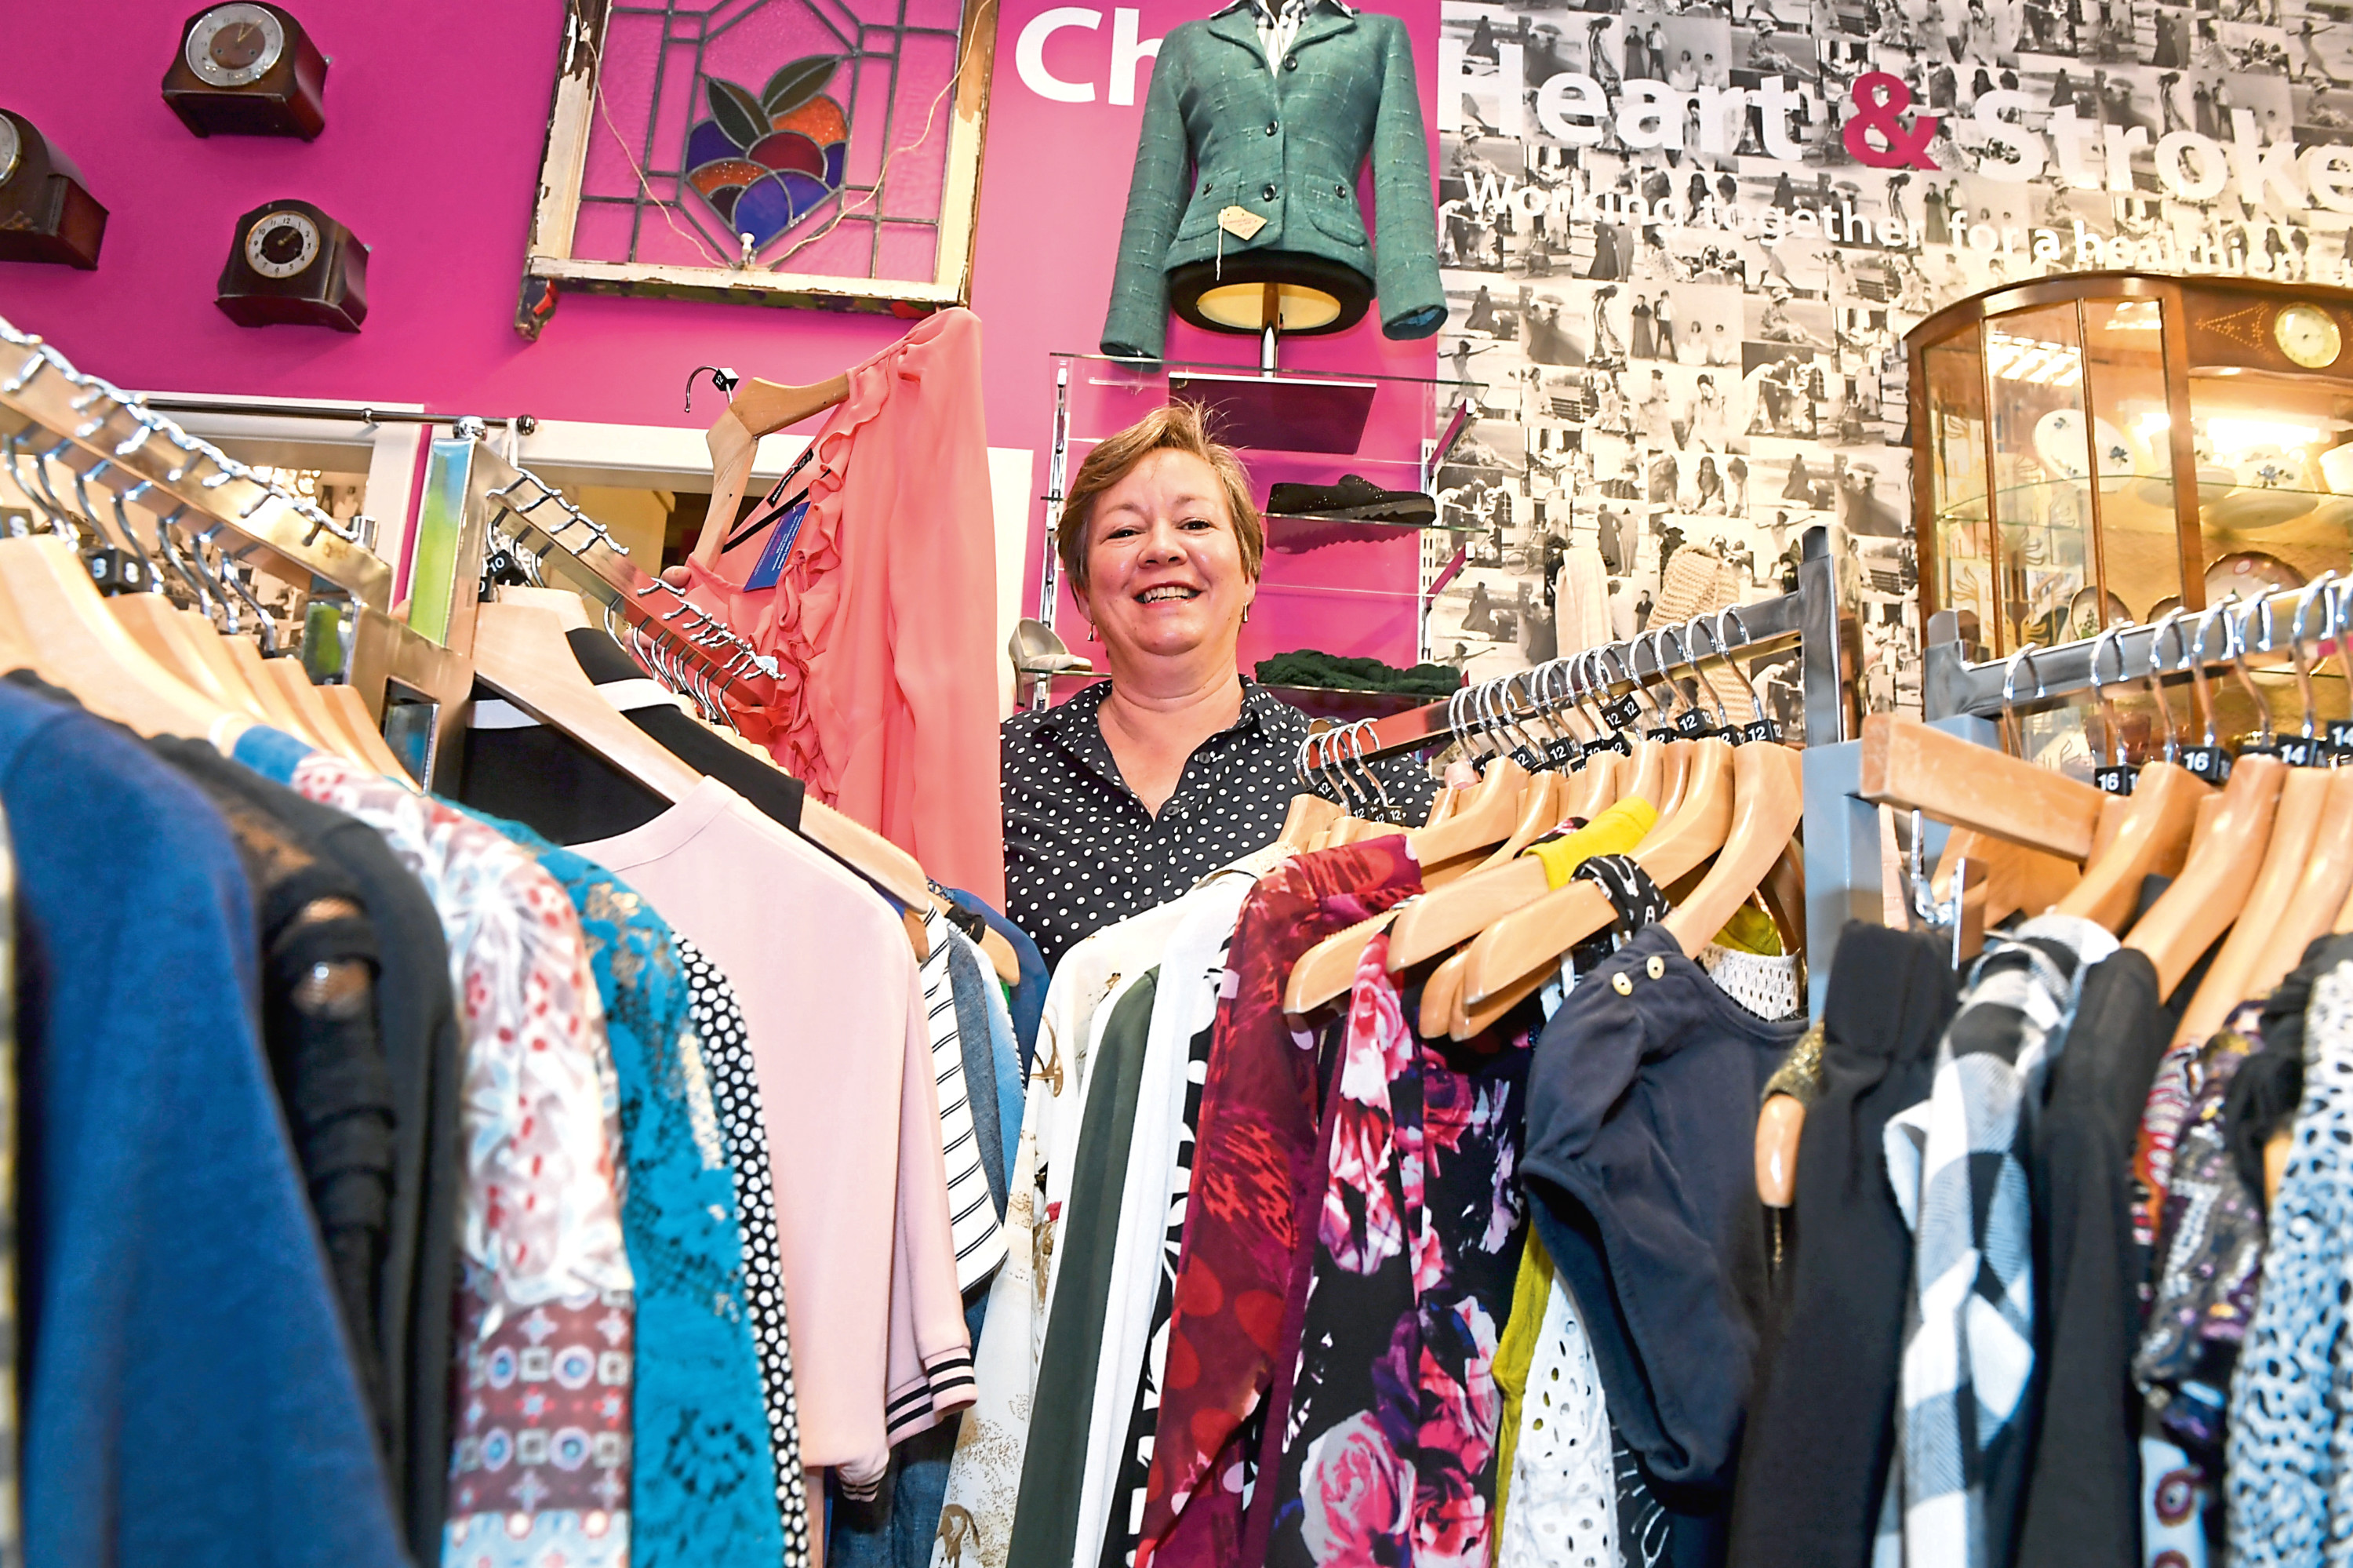 Lesley Skinner sorts the stock at the Chest Heart and Stroke Charity Shop in Cults.